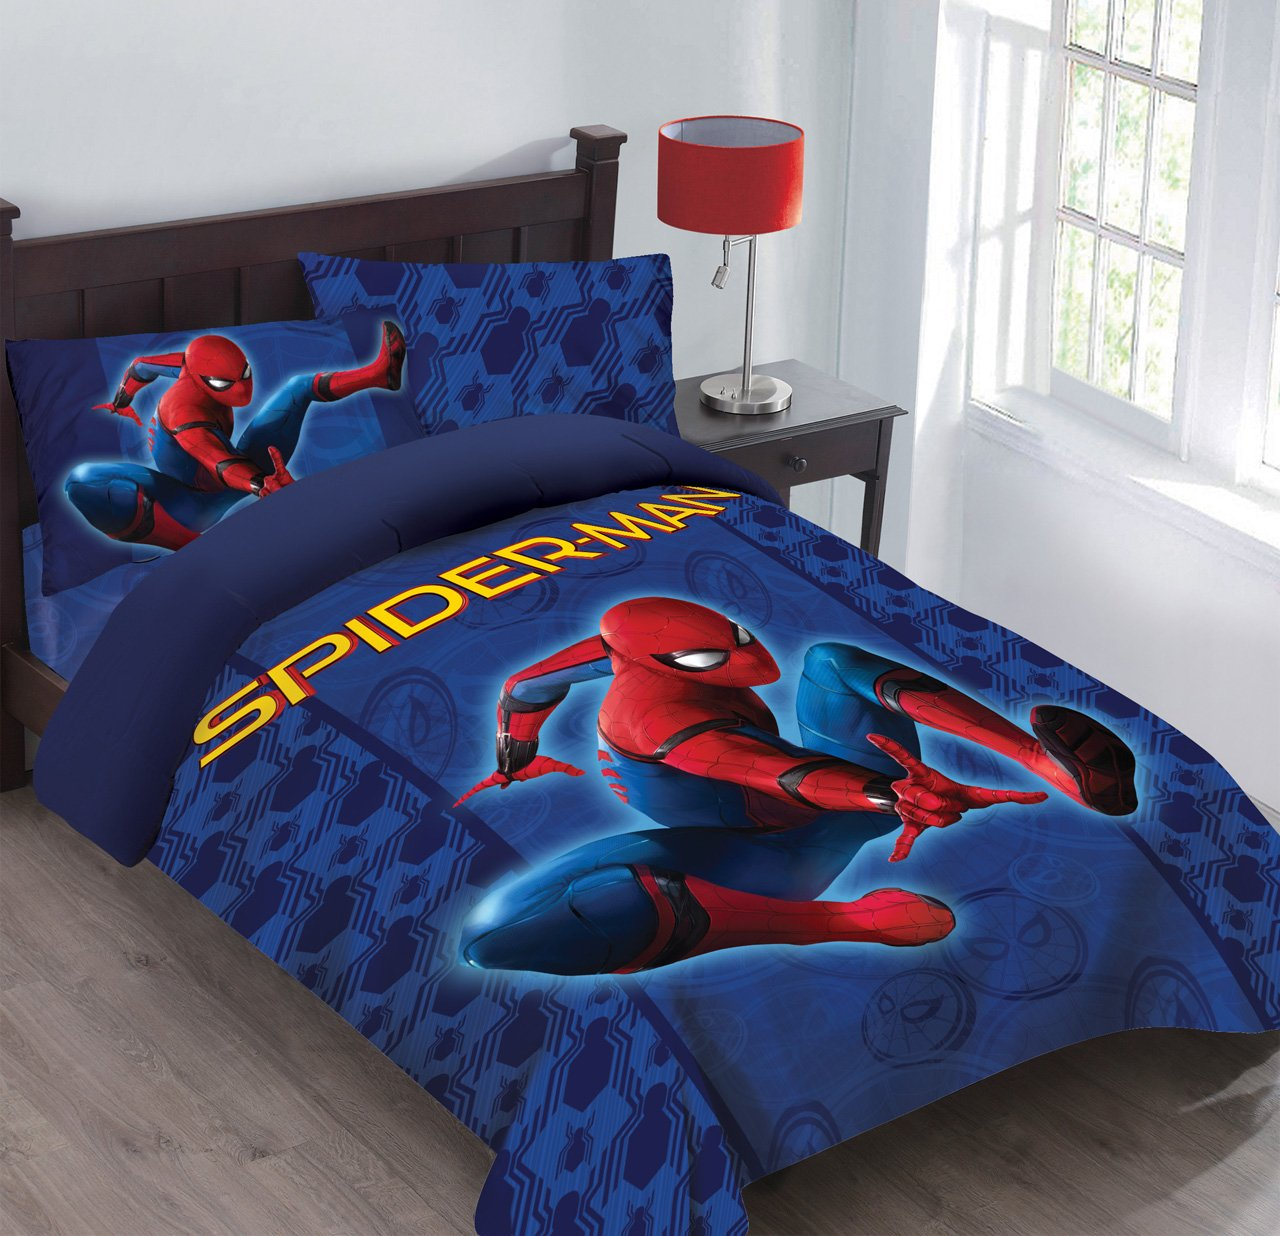 Marvel Spiderman Friendly Neighborhood Full Comforter Set with Fitted Sheet